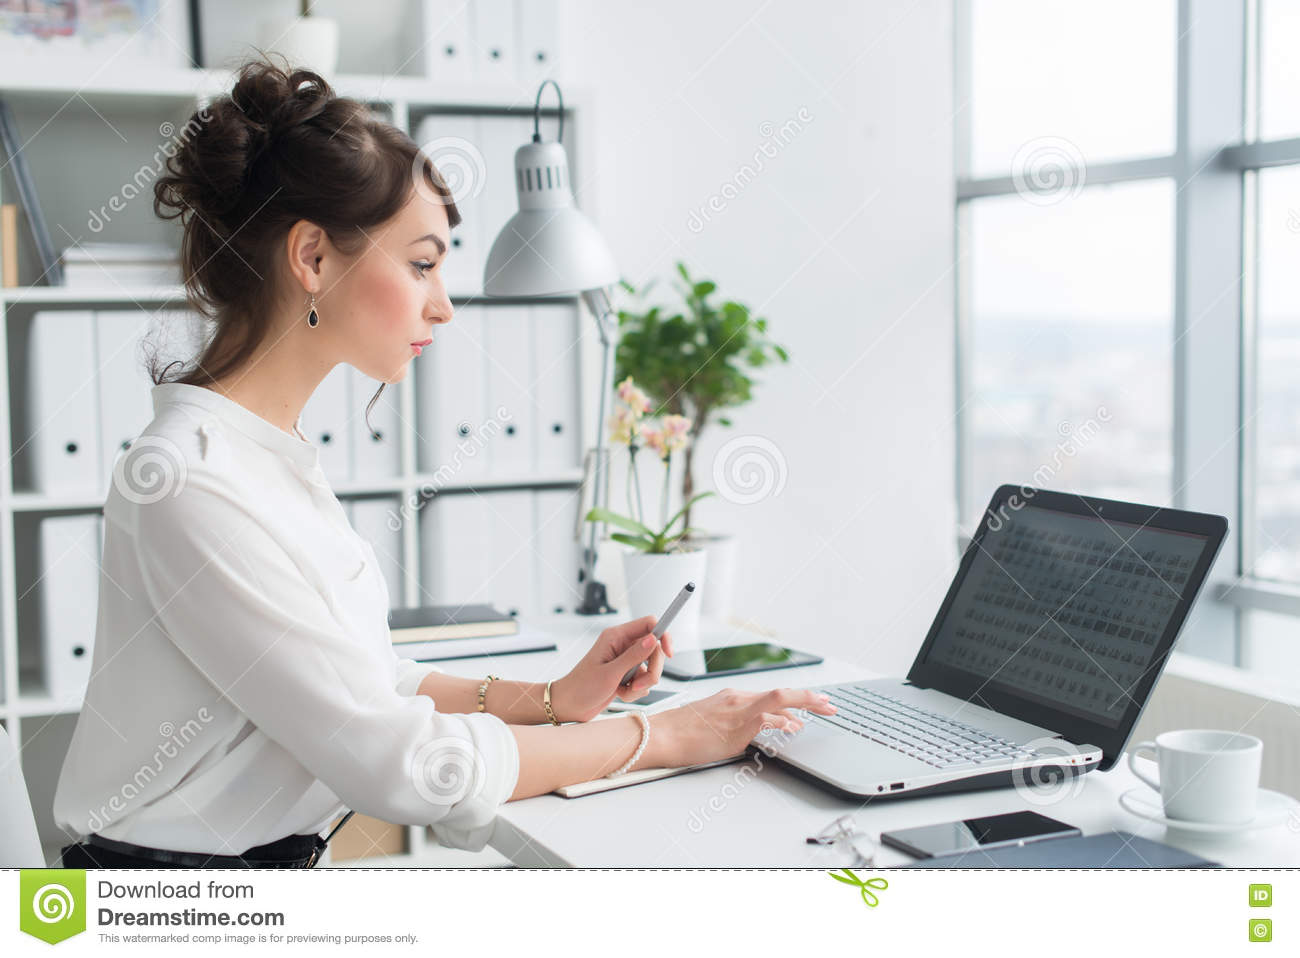 Female office worker using laptop at her workplace, browsing information, surfing the internet, side view portrait.